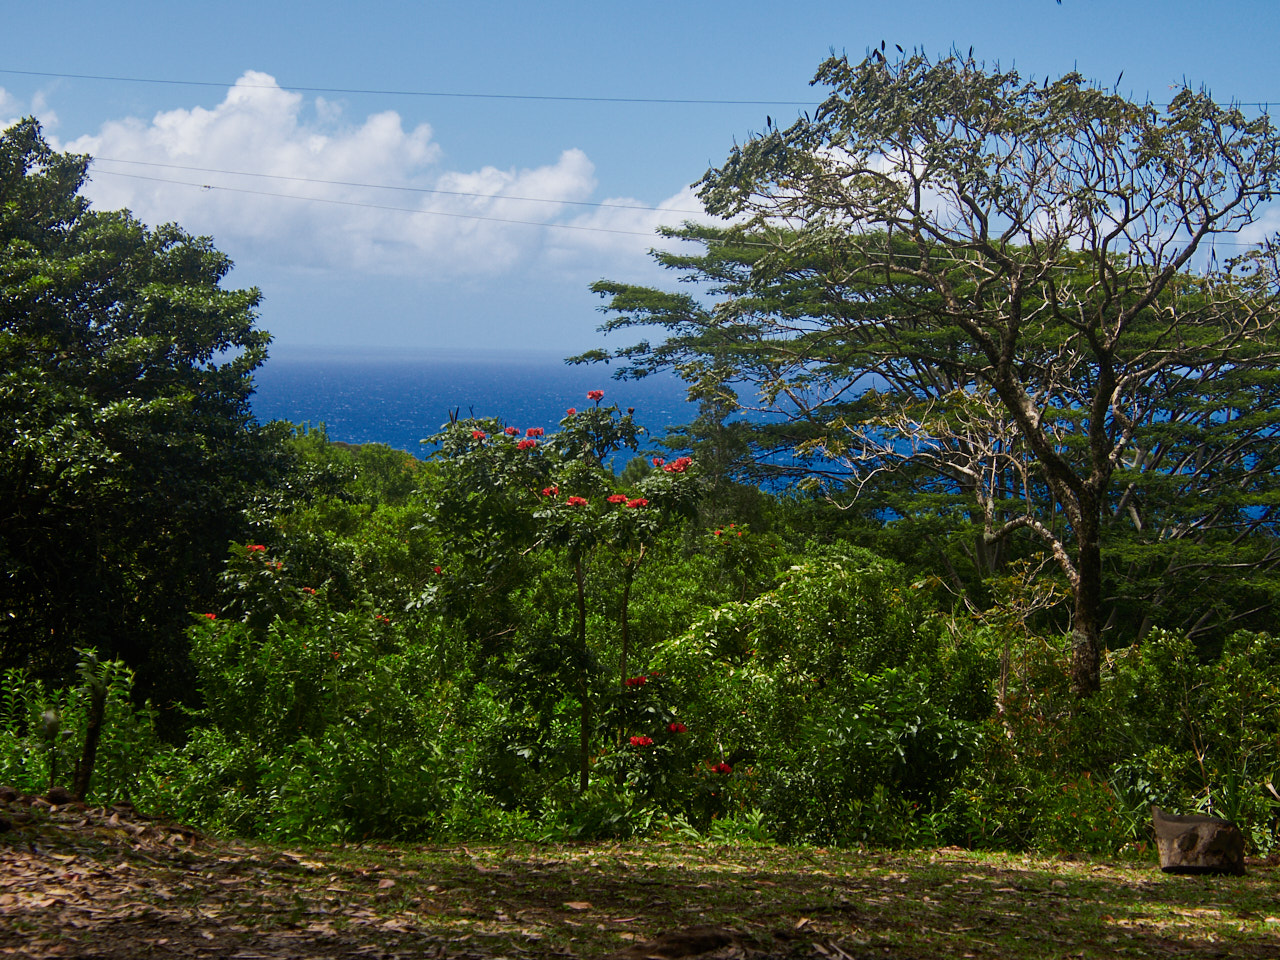 This view is from a picnic area, which would be a lovely place to relax and enjoy a snack.